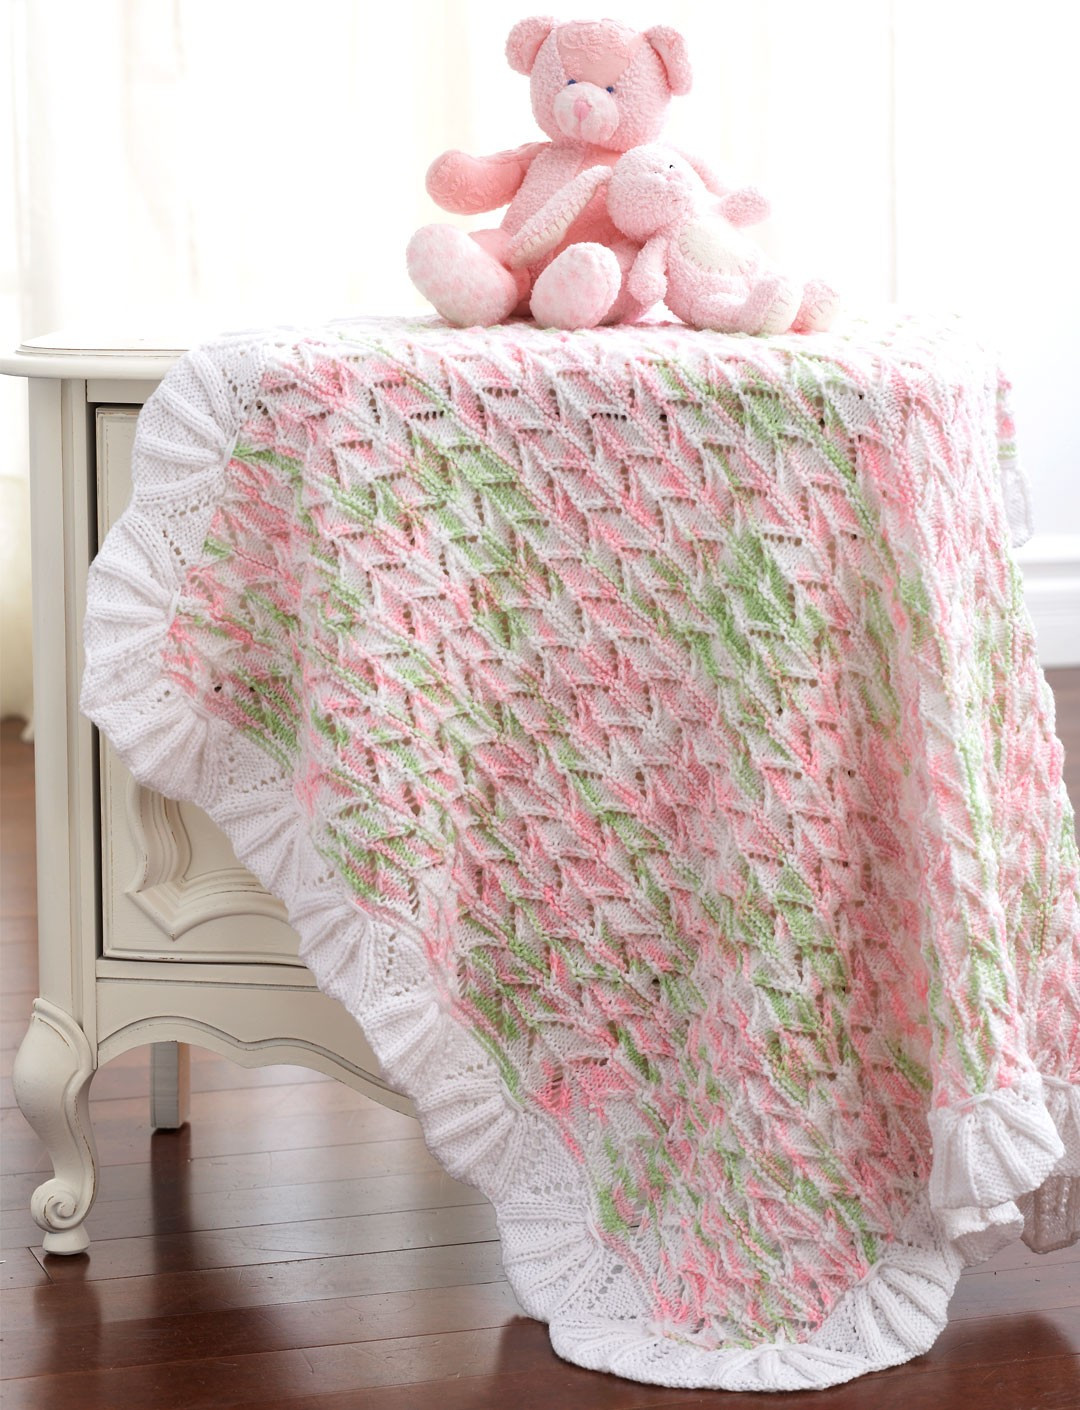 New A some Baby Blanket Knitting Patterns Lace Blanket Of Great 41 Ideas Lace Blanket